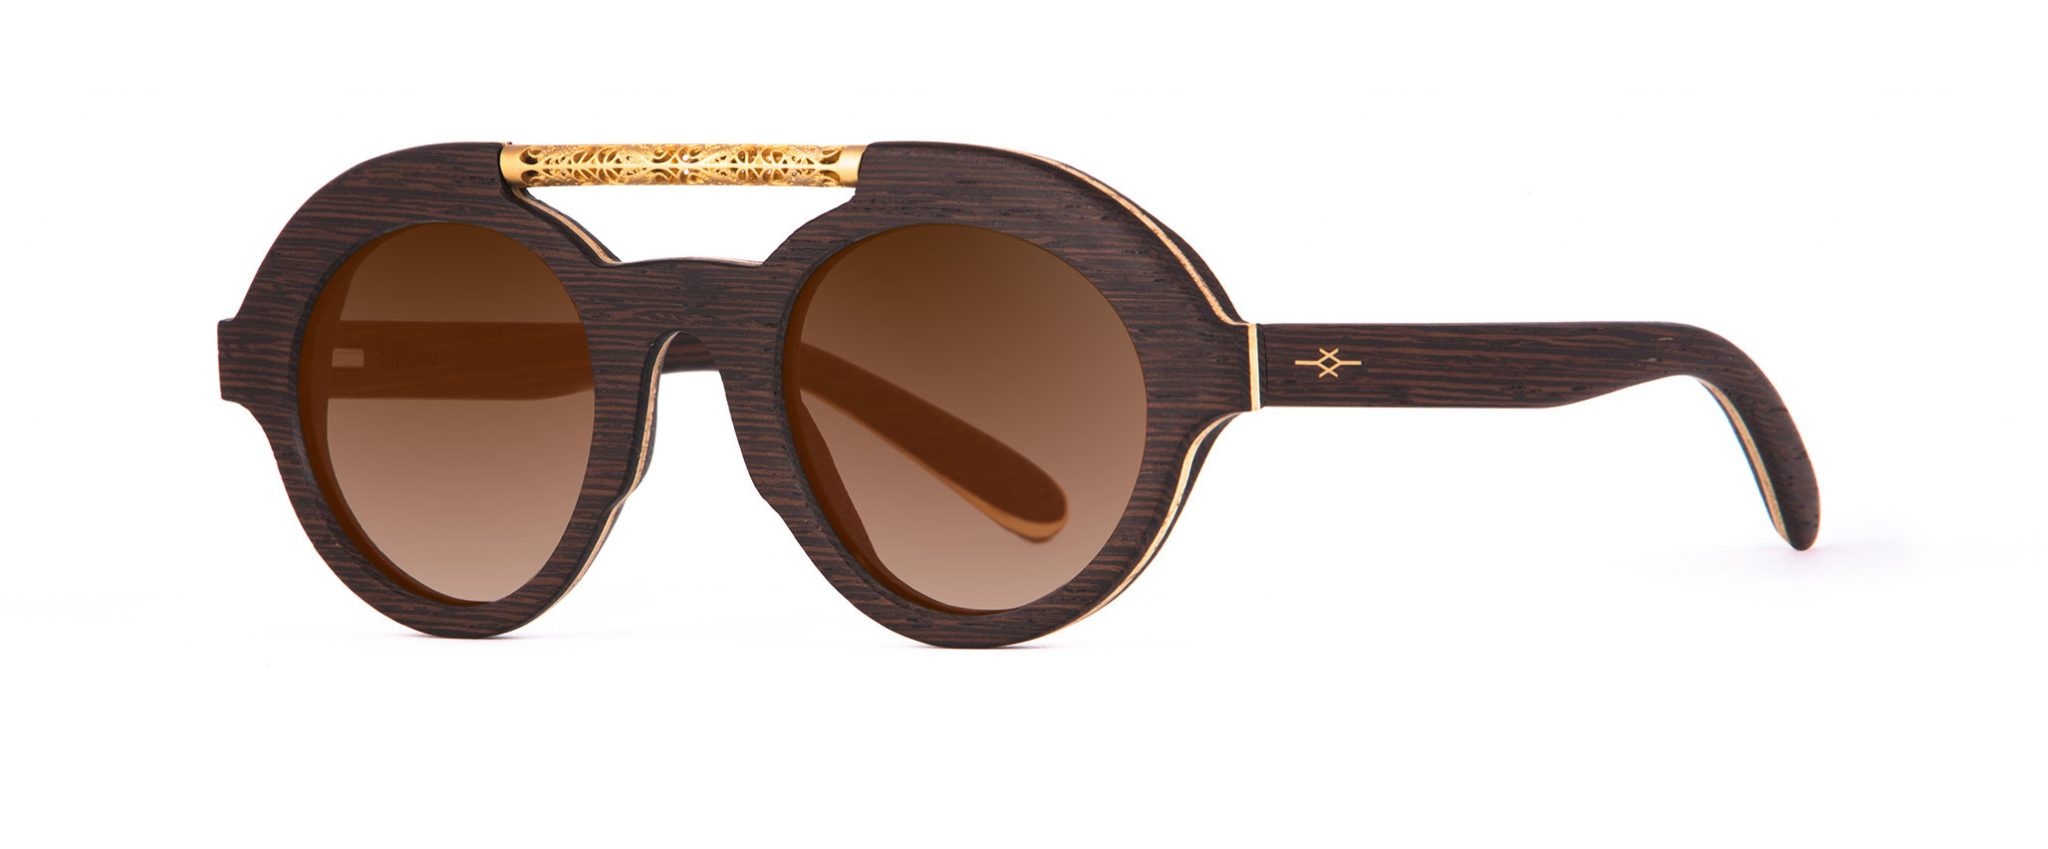 Sultana Featuring Jewelry Wenge Wood Sunglasses Designer Eyewear